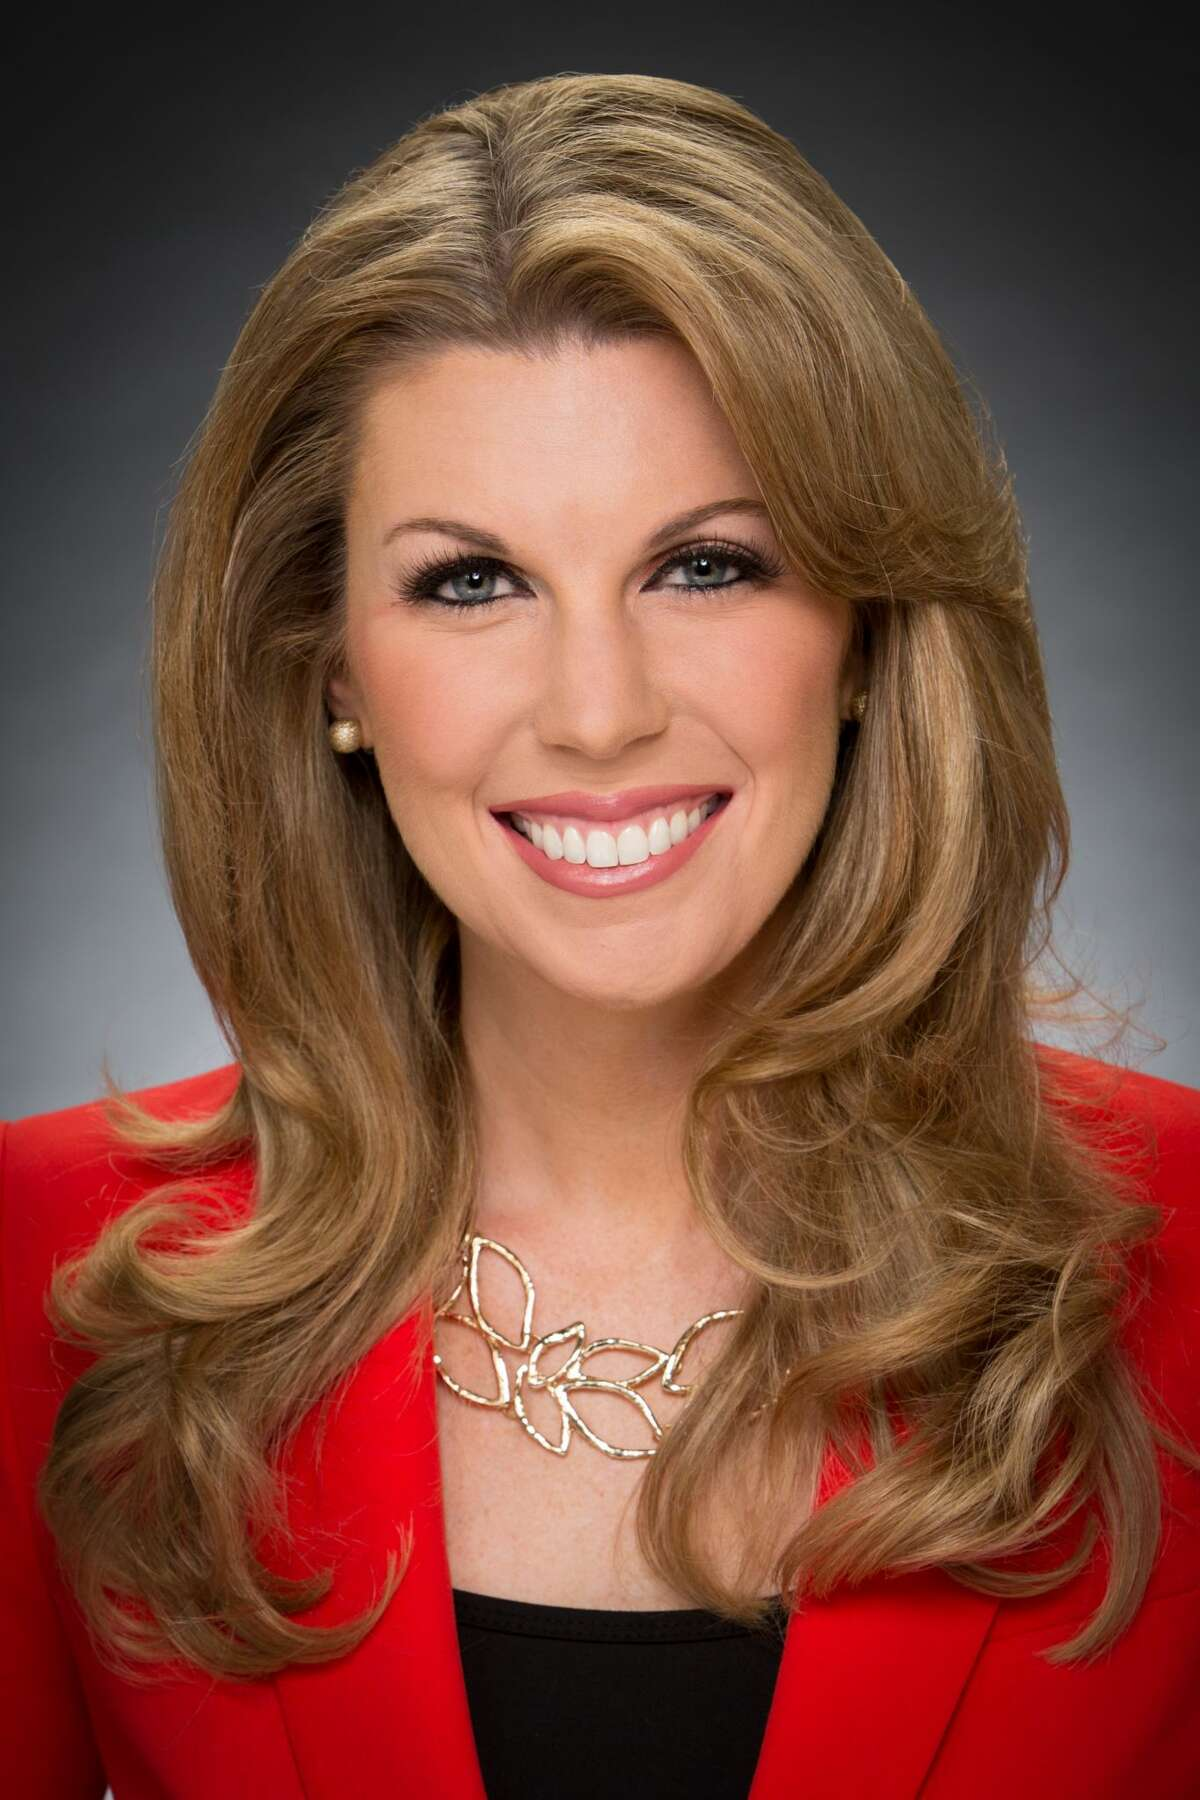 KSAT12 anchor Myra Arthur will be in quarantine following her son and husband's positive COVID-19 test.